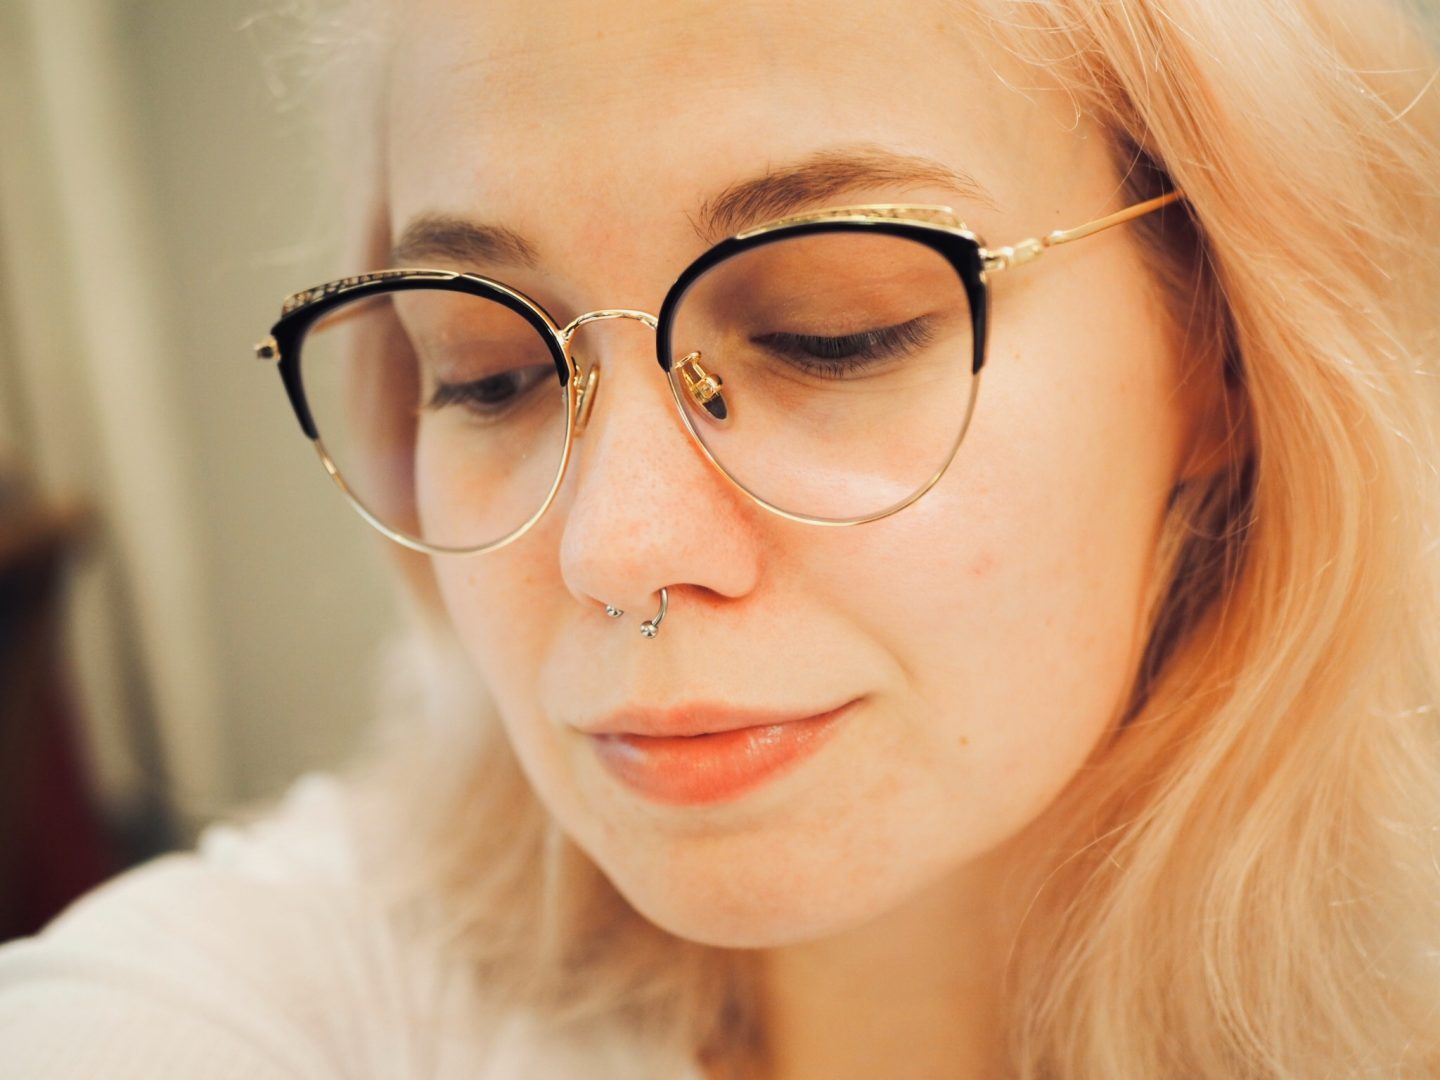 Back to work glasses